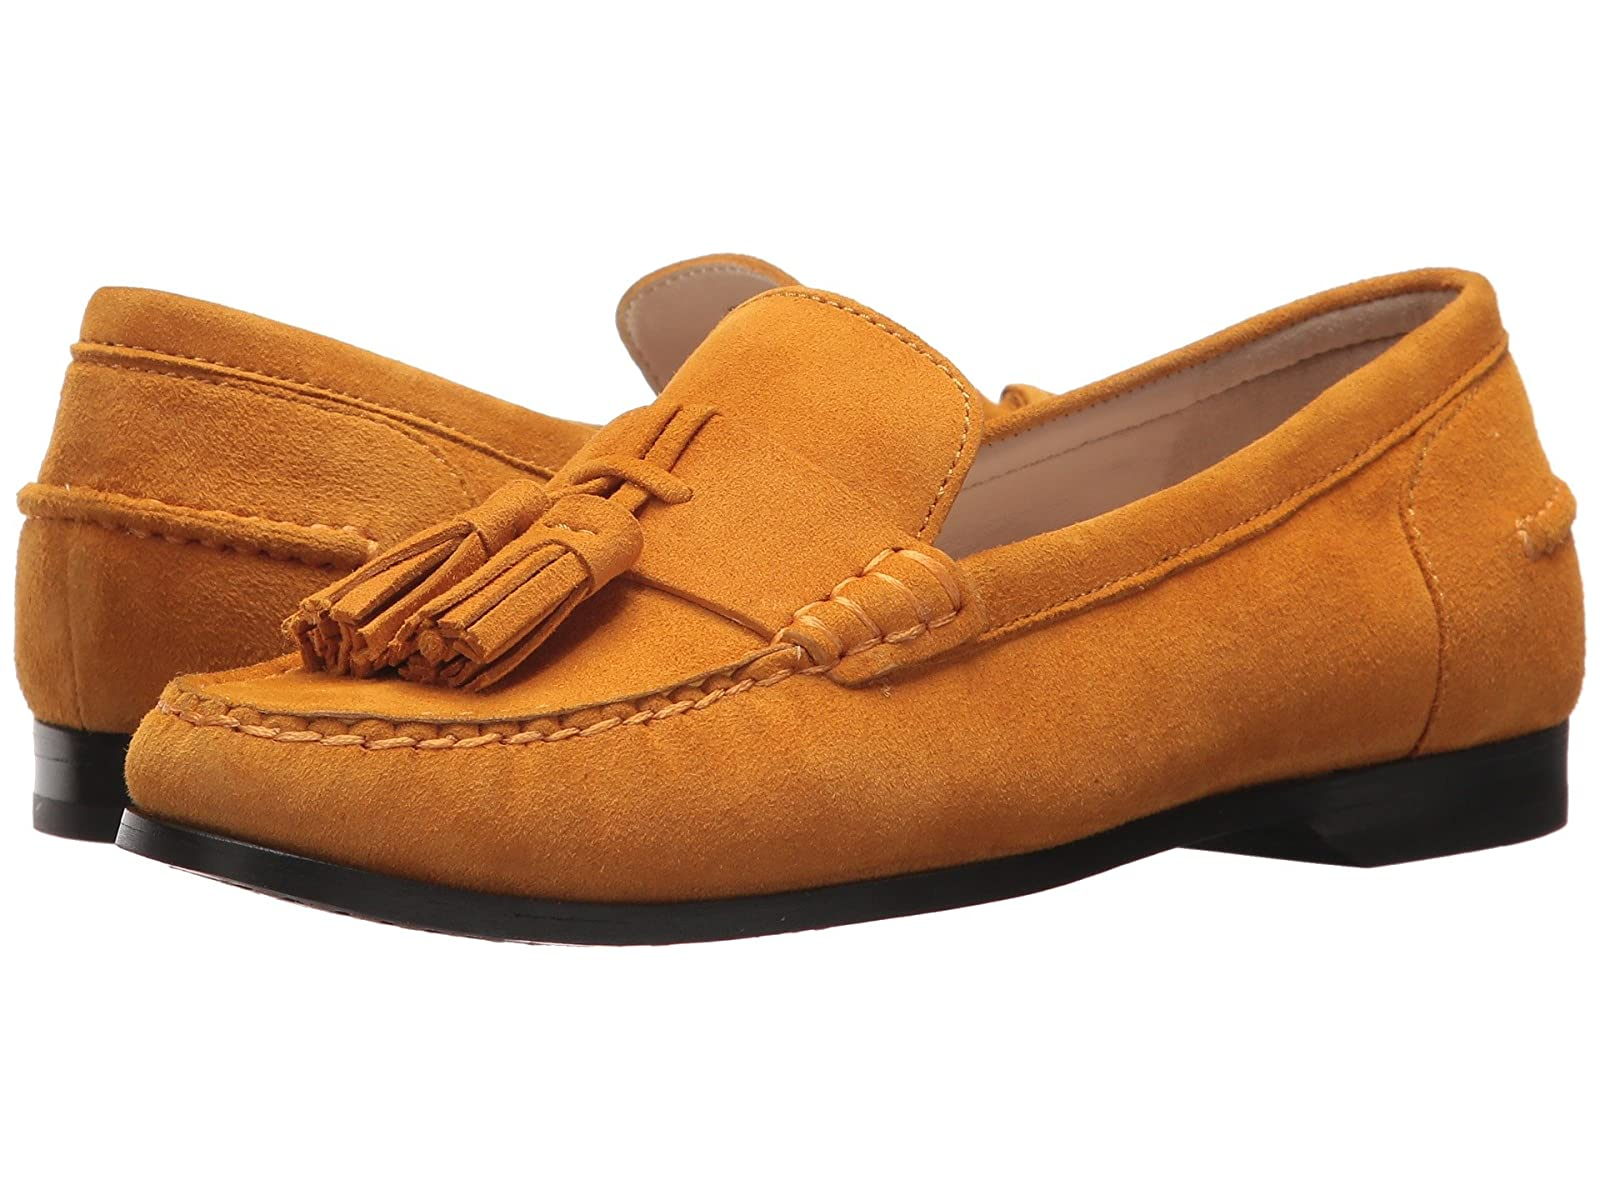 Cole Haan Emmons Tassel Loafer IICheap and distinctive eye-catching shoes